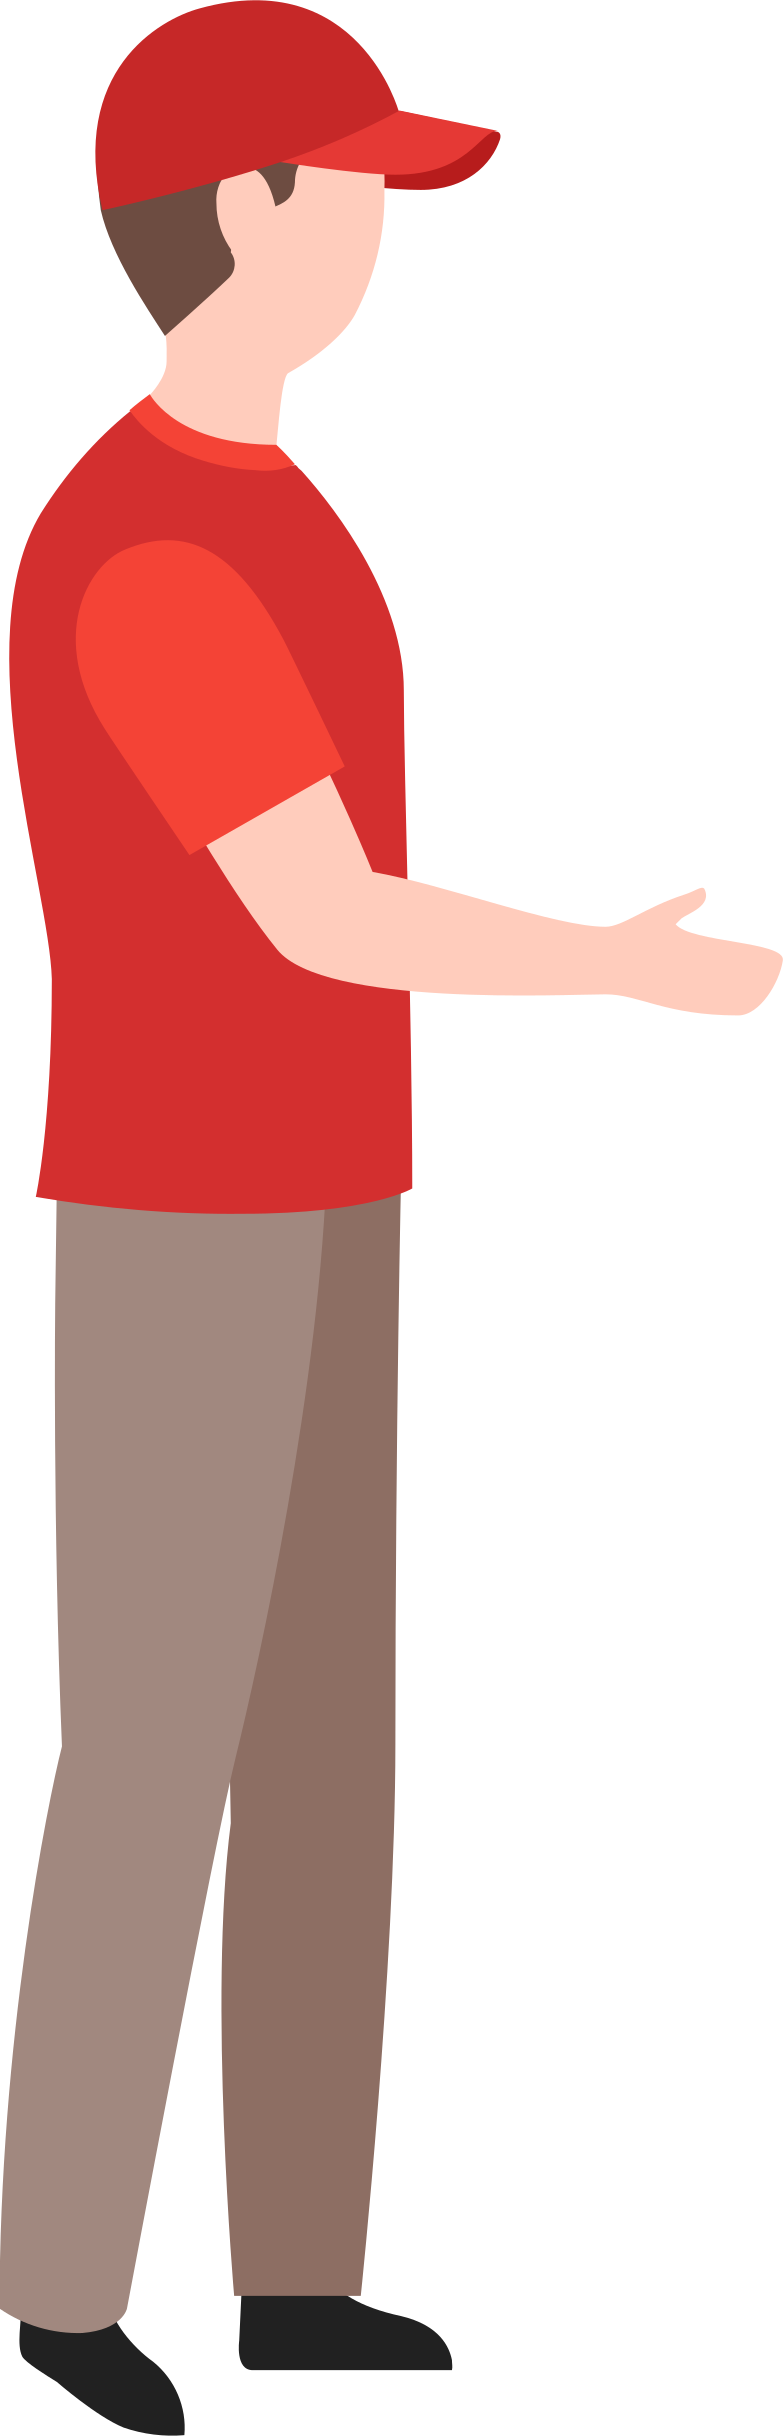 style delivery man in red cap Vector images in PNG and SVG | Icons8 Illustrations